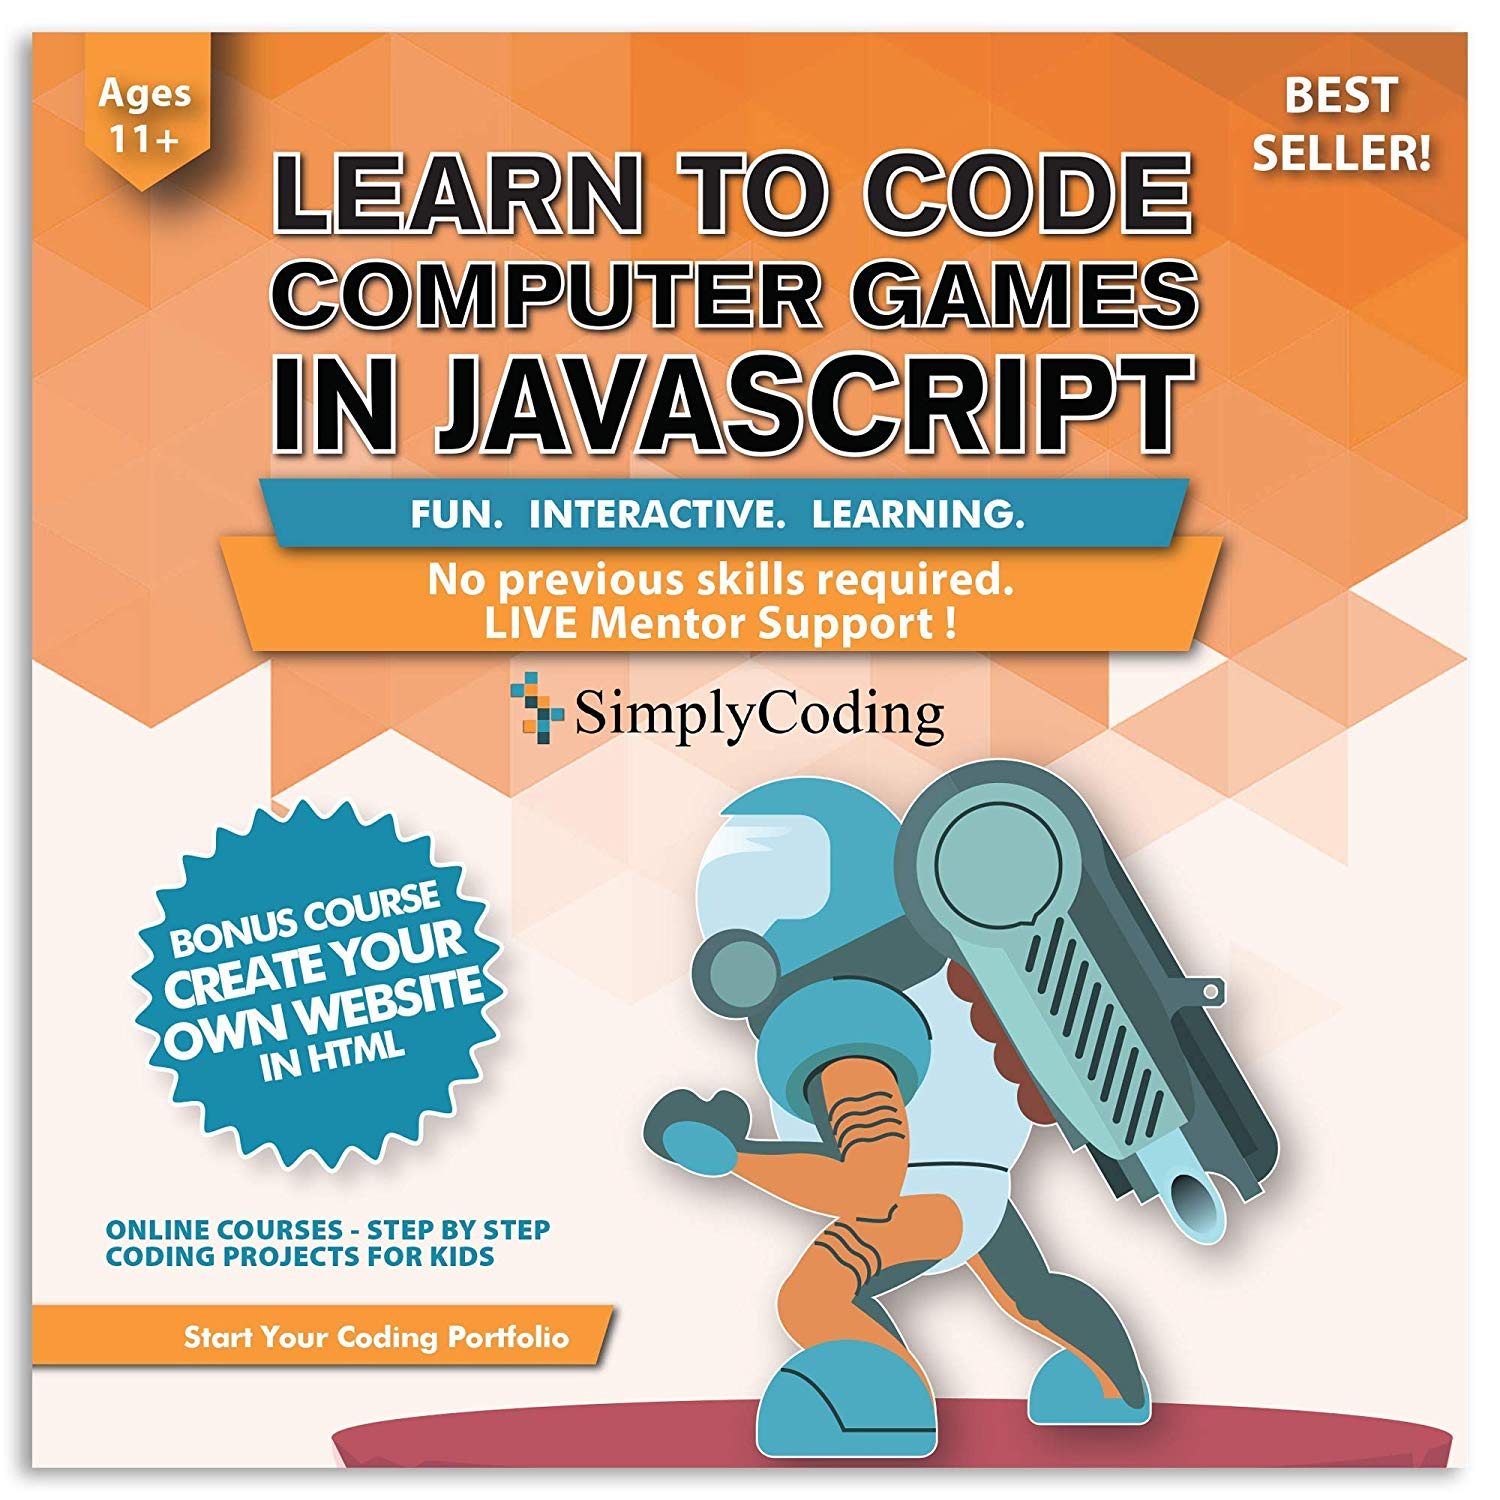 JavaScript Game Design Course from Simple Coding Becomes #1 Amazon Bestseller